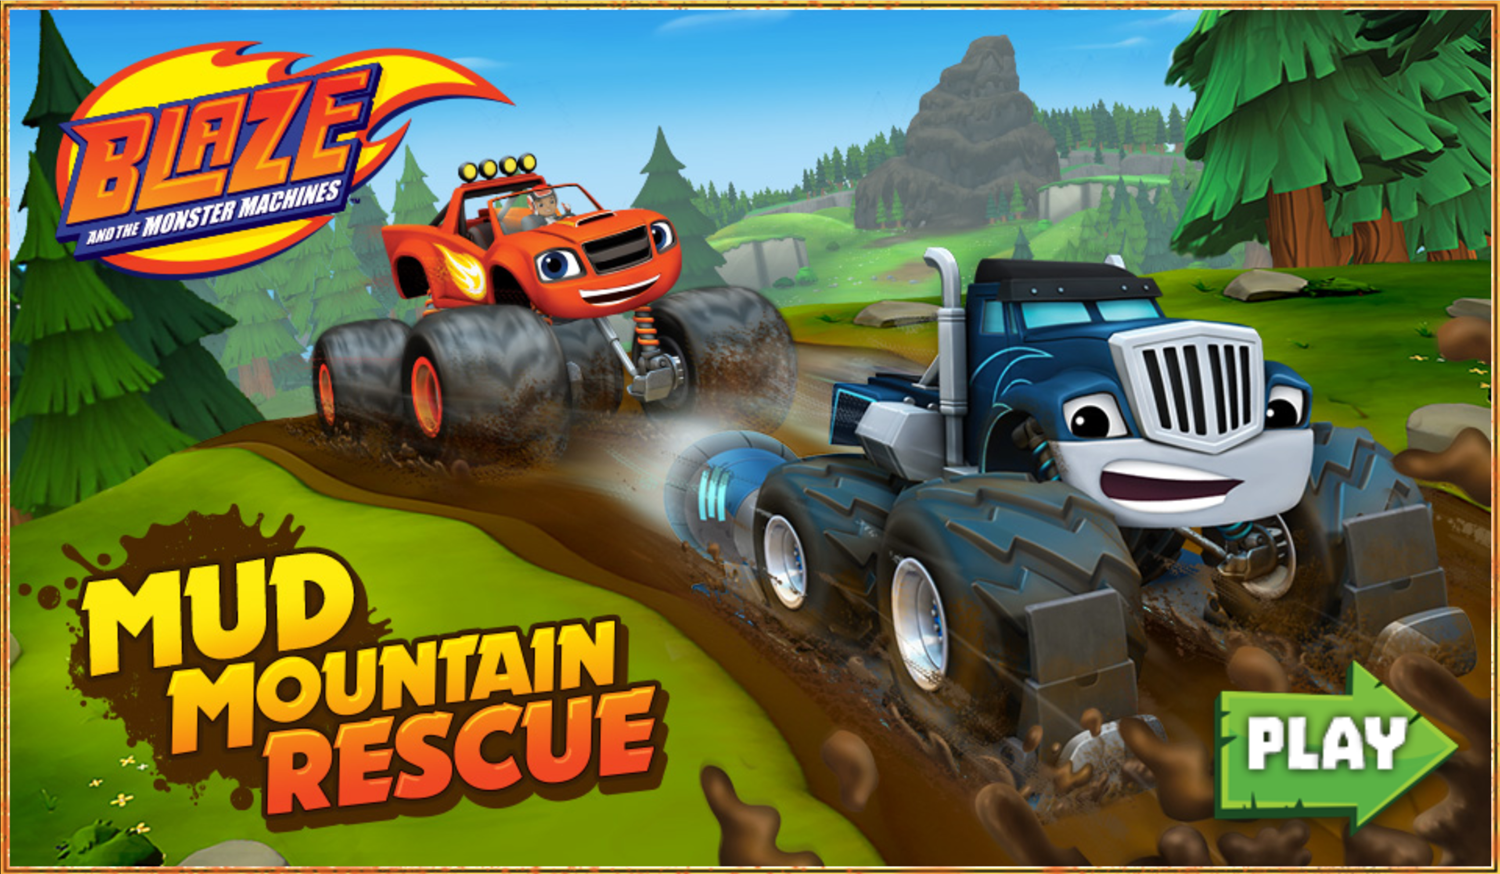 Blaze and the Monster Machines Mud Mountain Rescue Game Welcome Screen Screenshot.